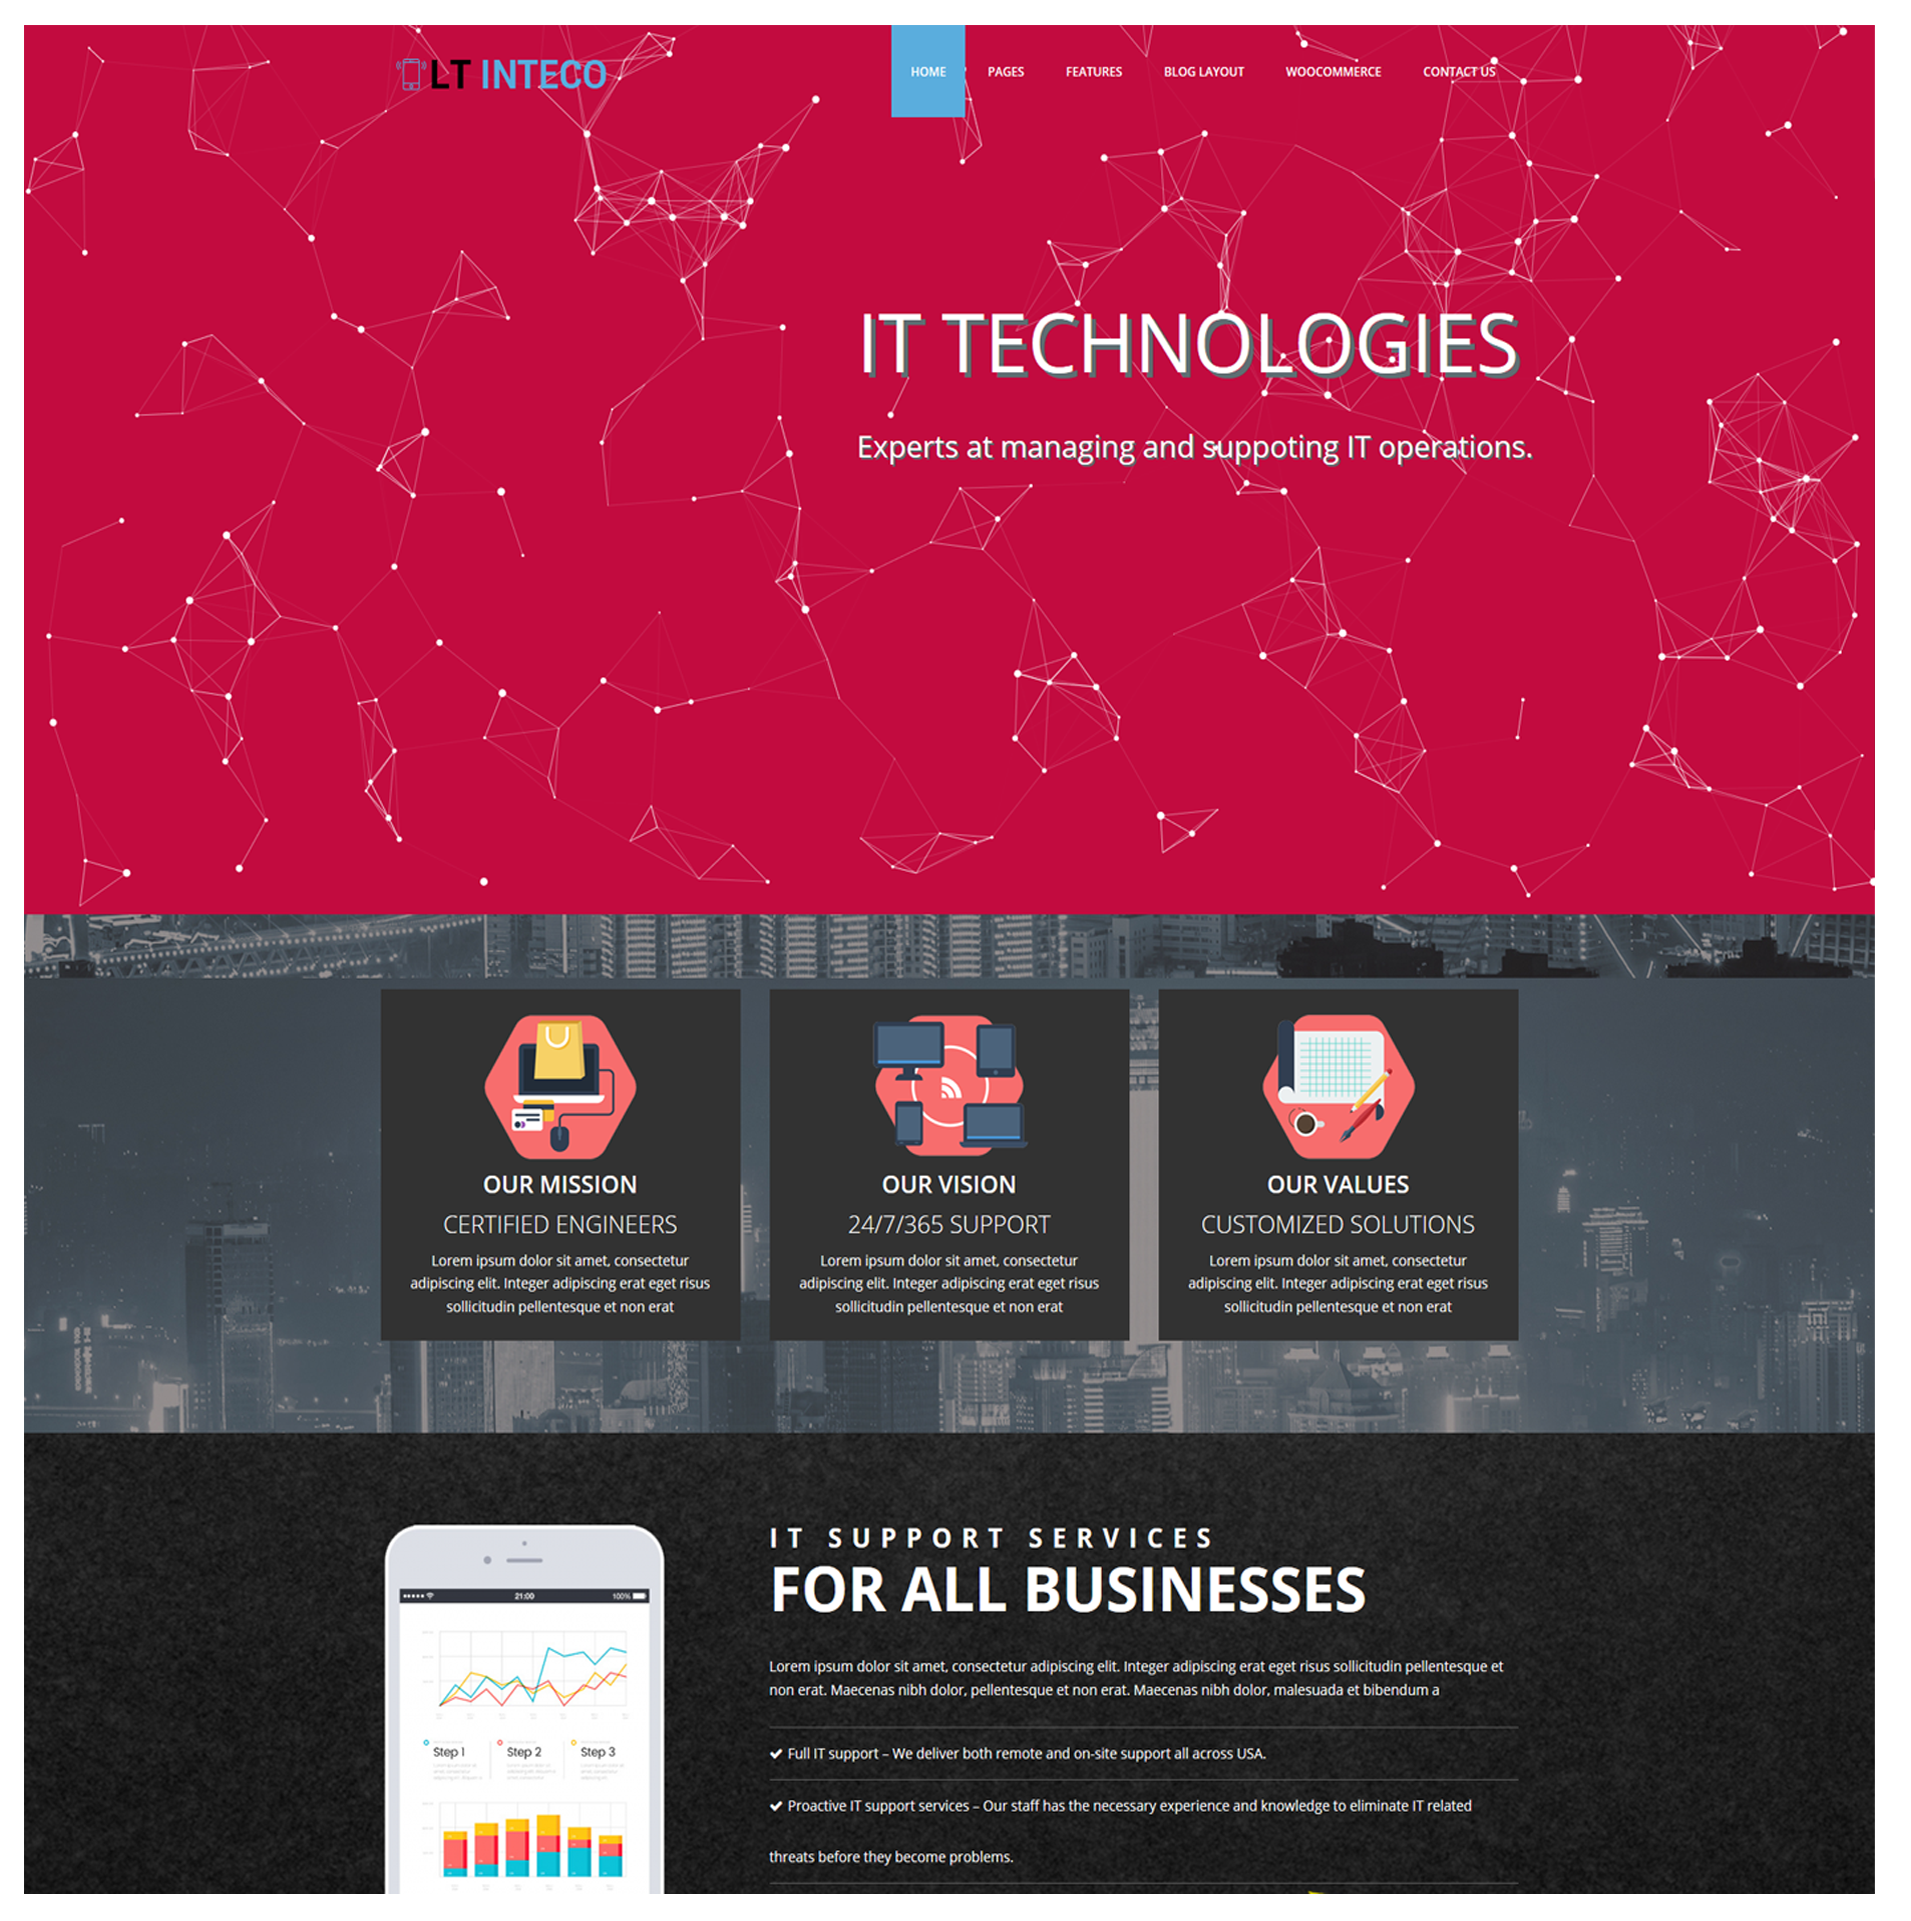 lt-inteco-screenshot-responsive-worspress-theme